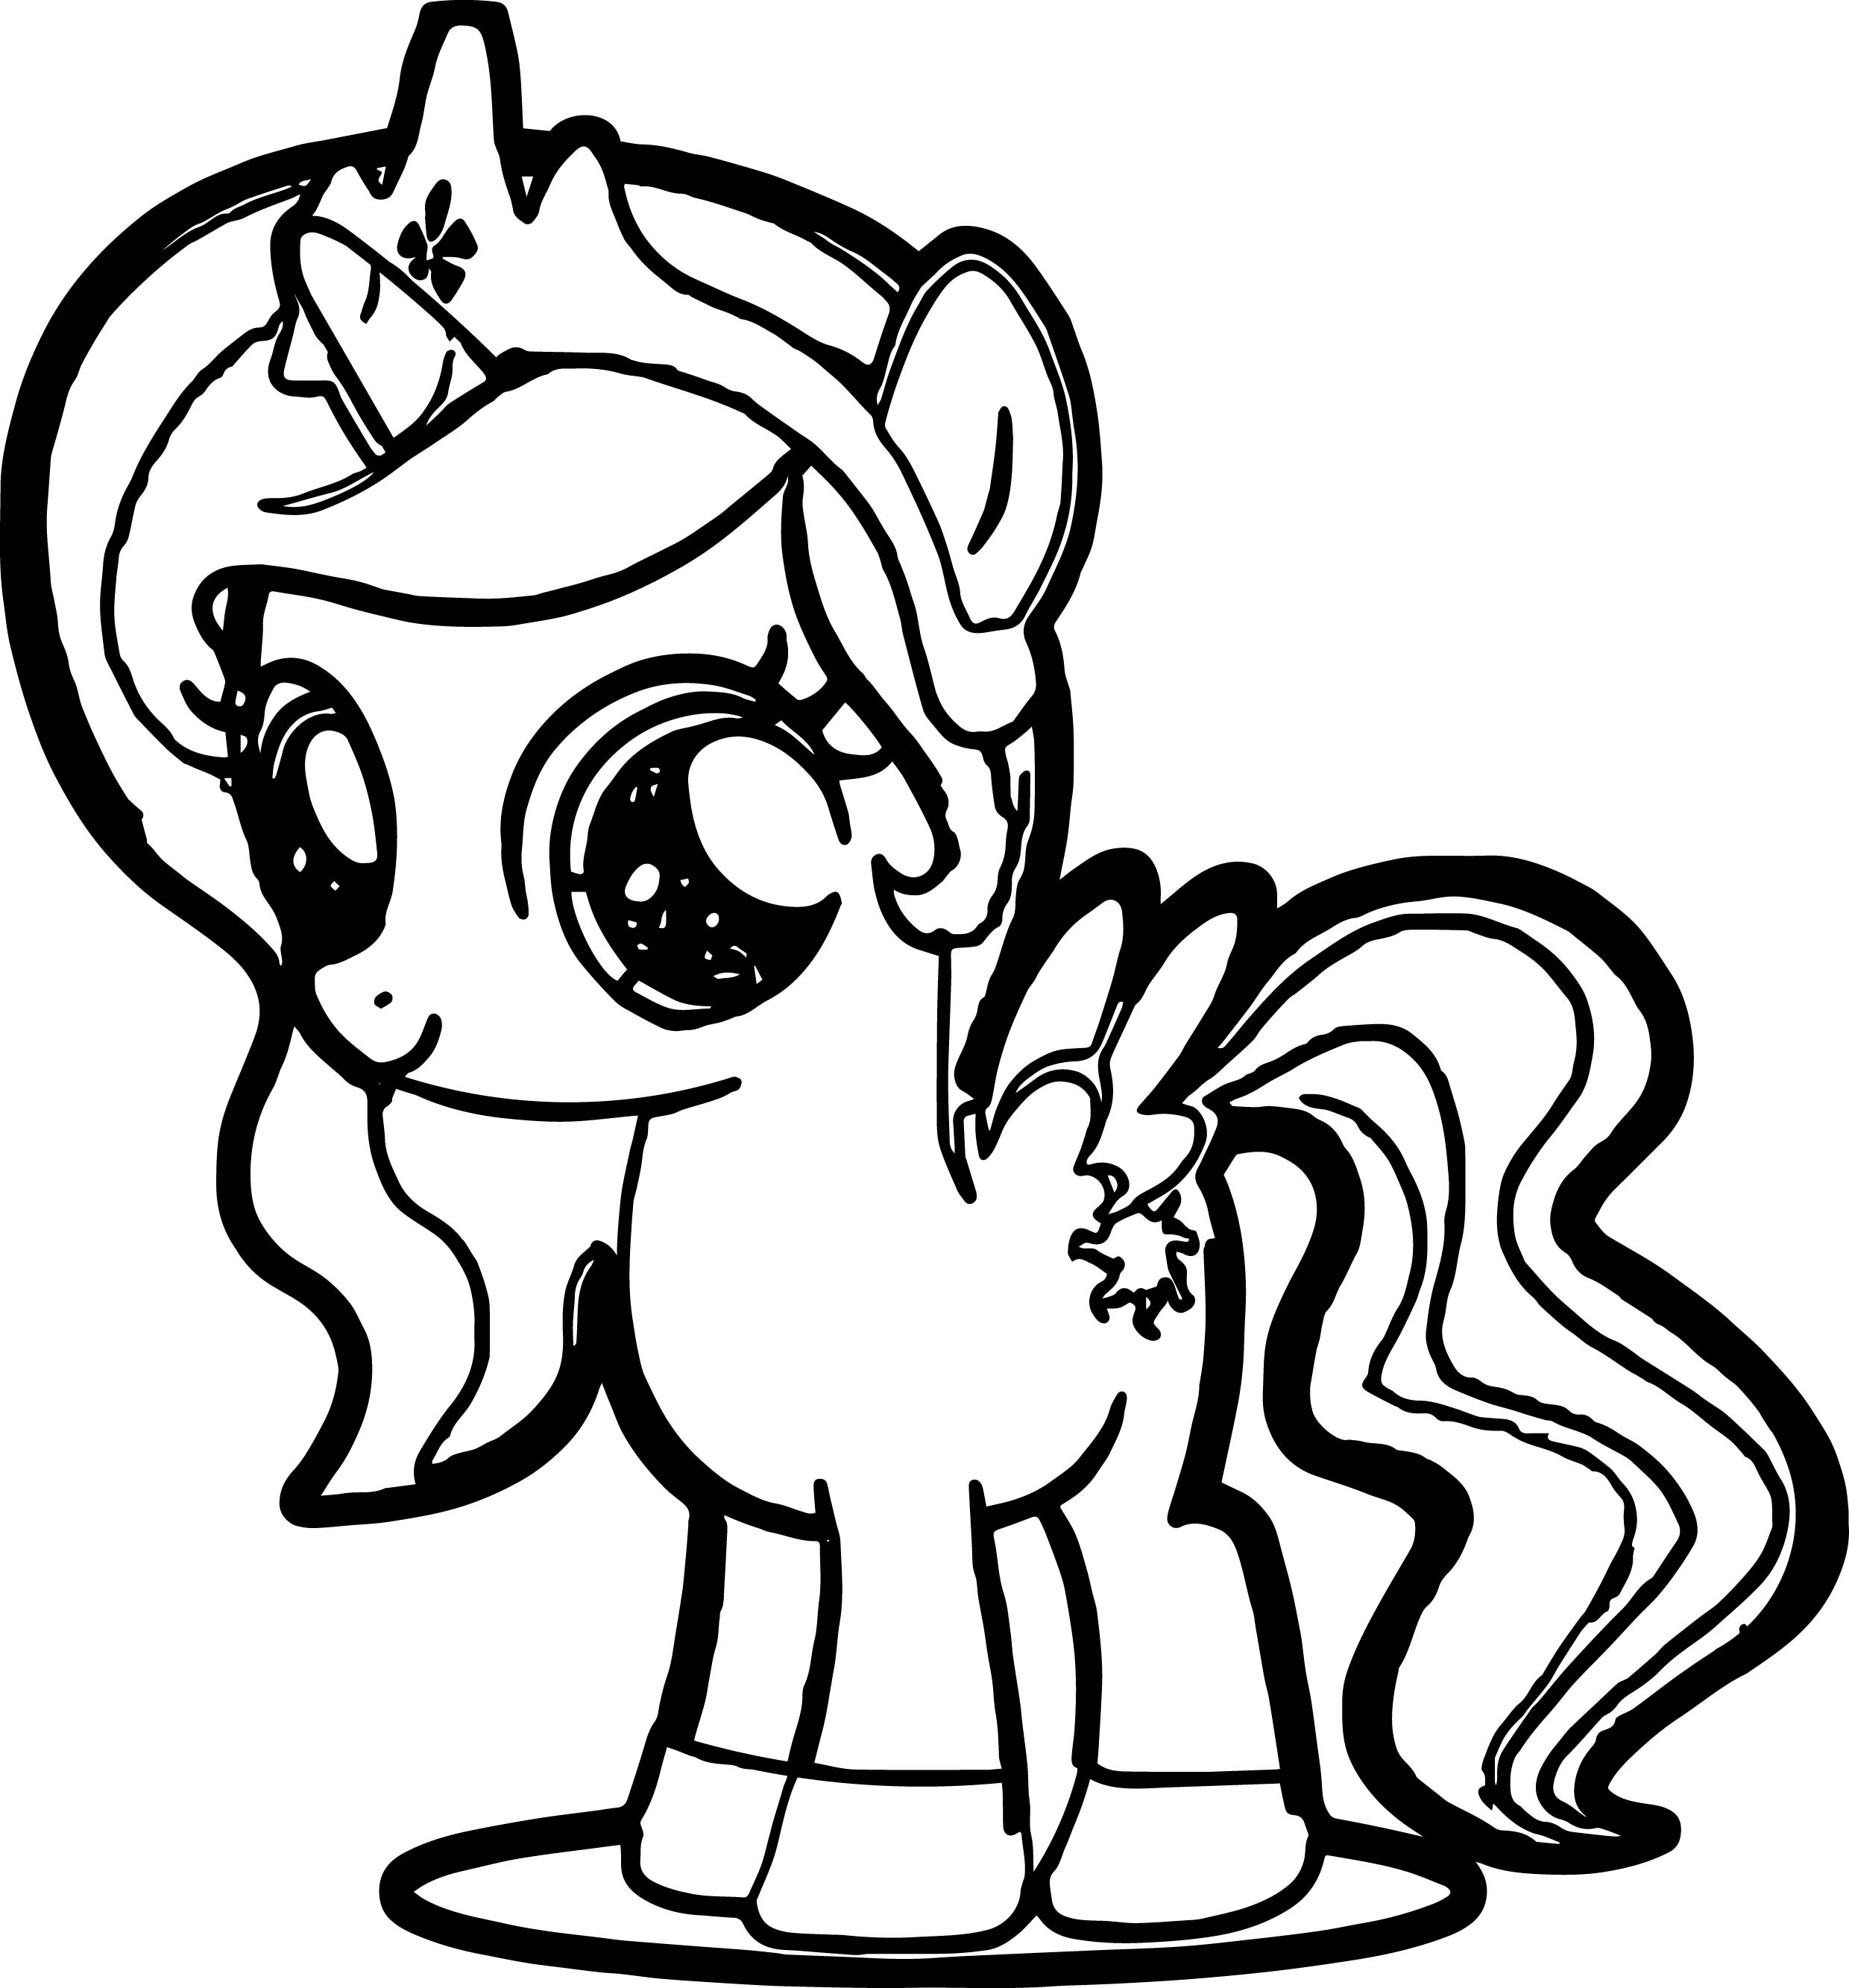 my little pony drawing pages little pony coloring pages free download on clipartmag pony little drawing pages my